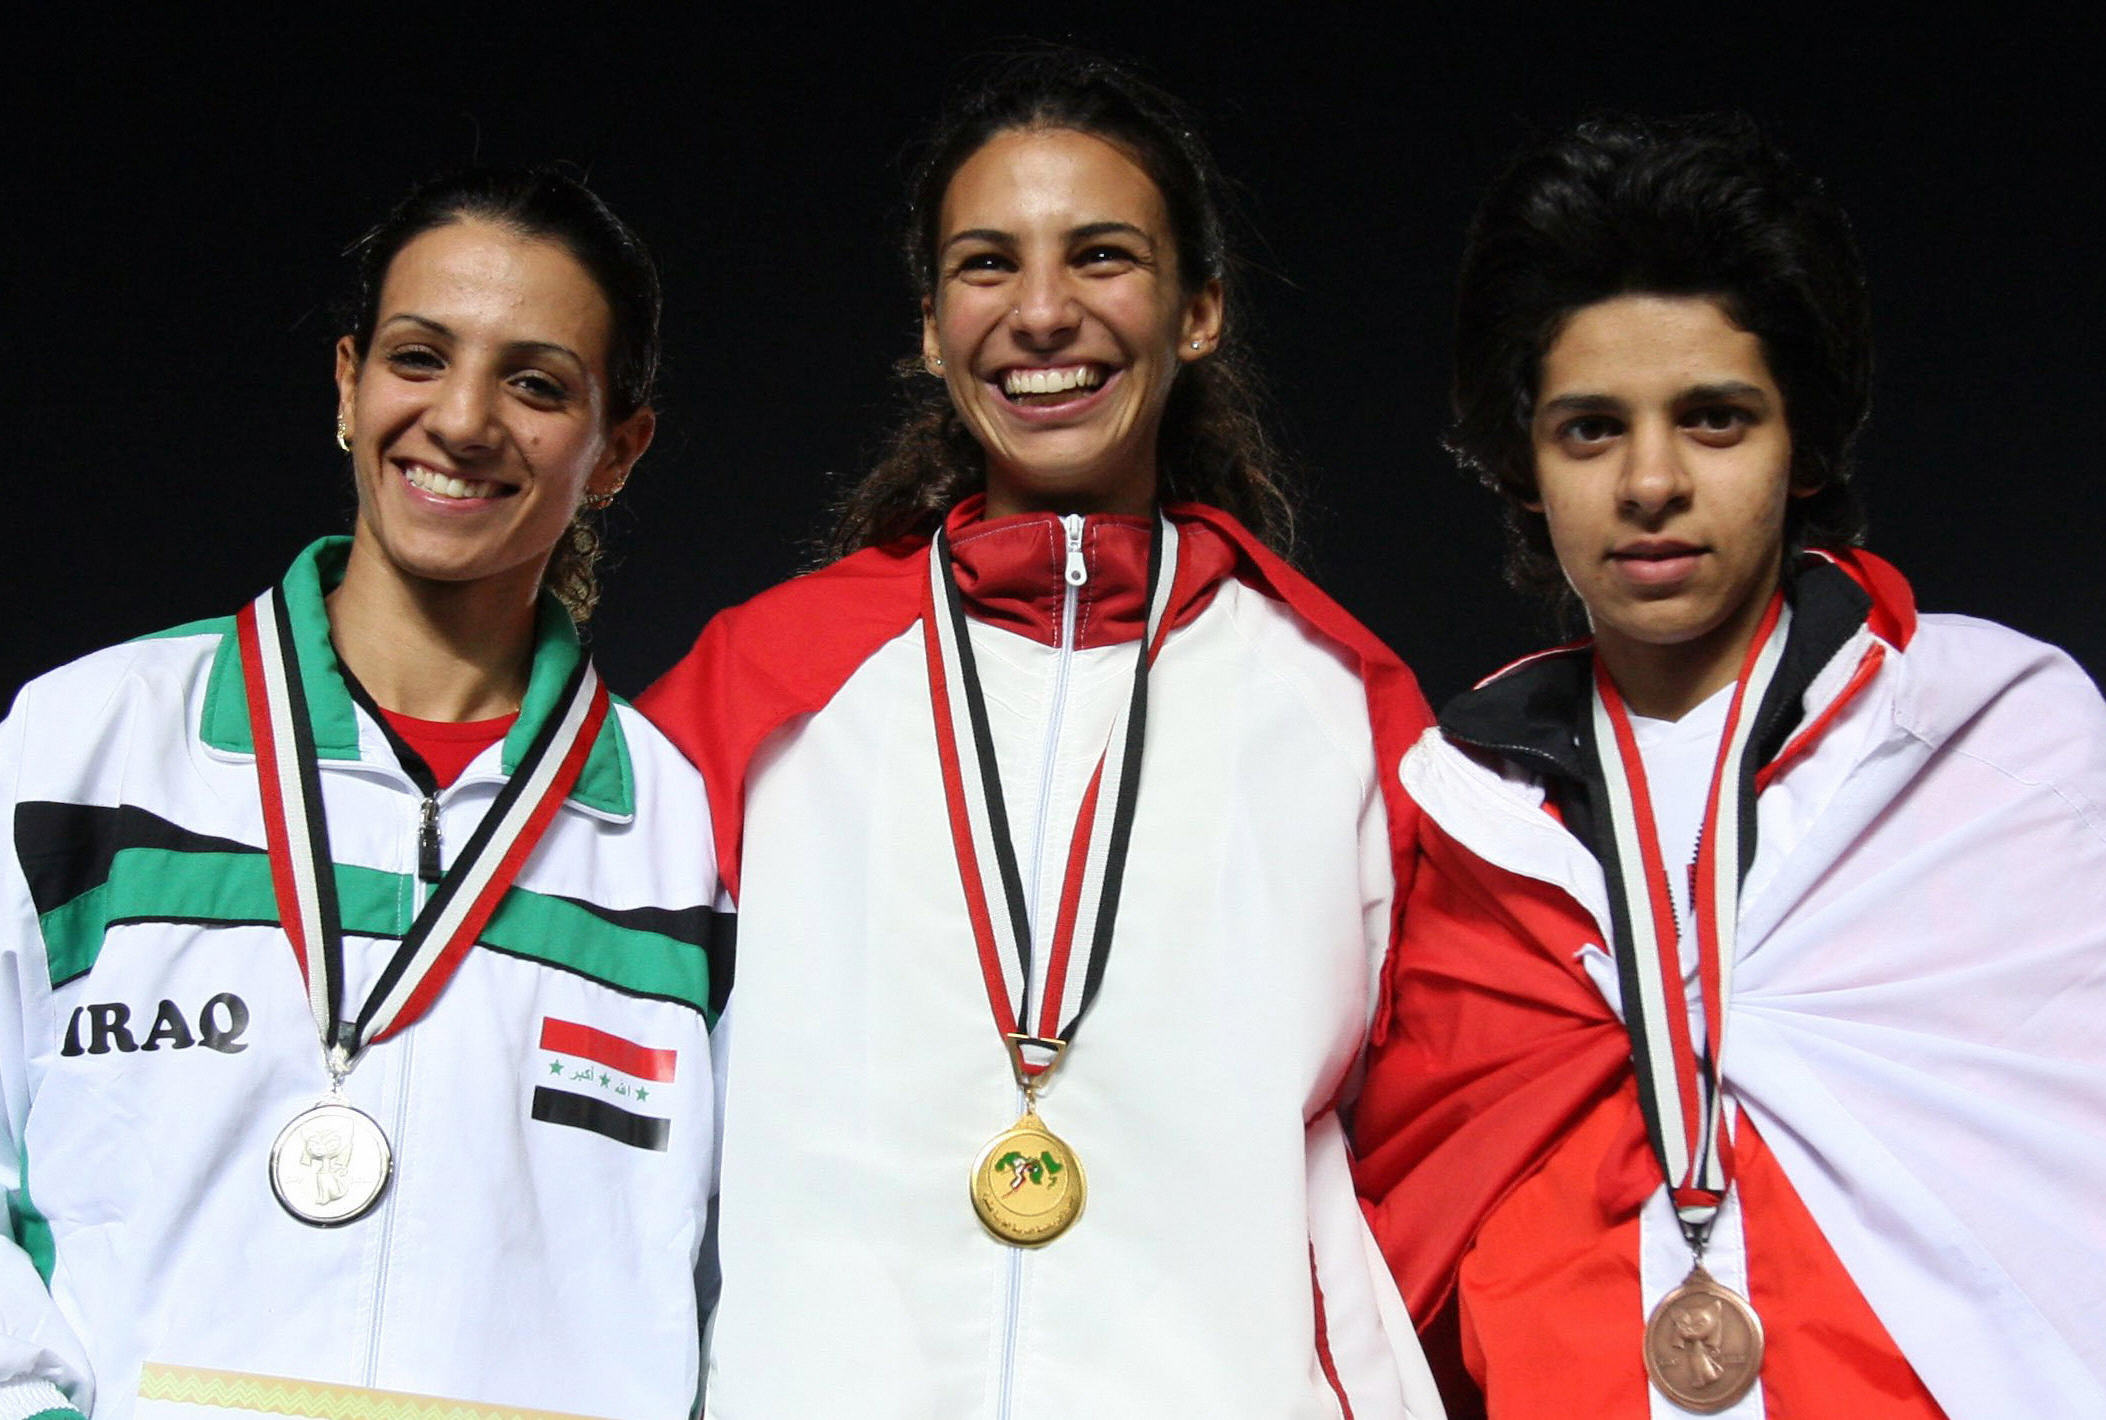 Dana Abdul Razzaq of Iraq (L) poses on the podium after winning the silver medal for the 100m race during the Pan Arab Games.